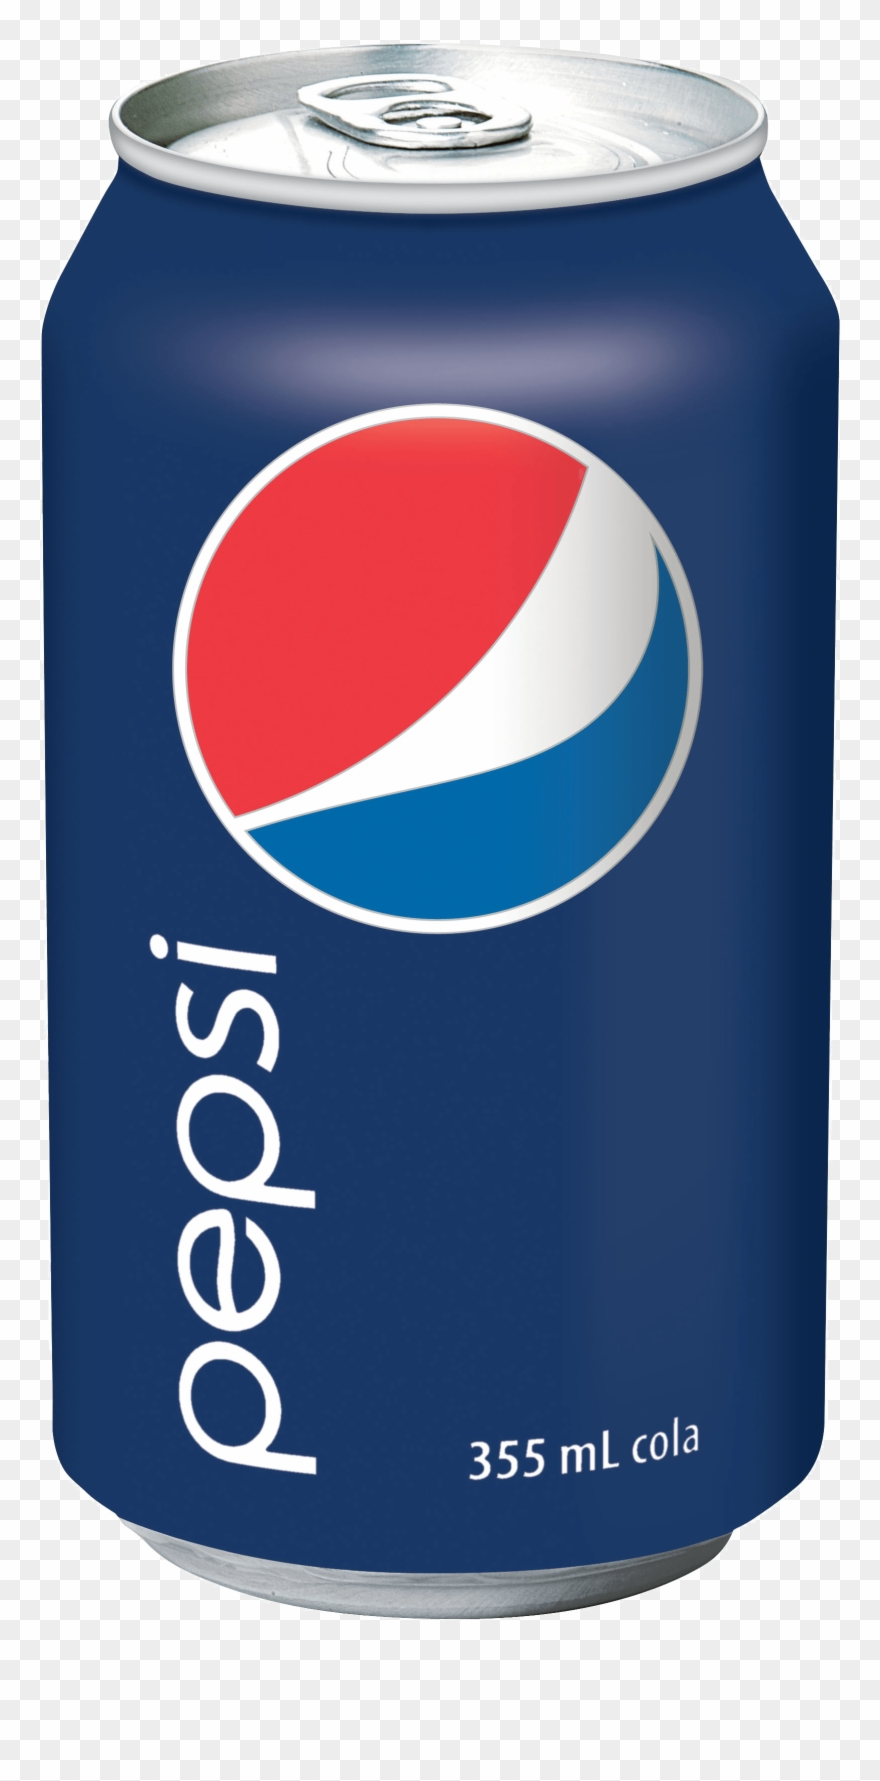 Transparent can clipart graphic freeuse stock Pepsi Cliparts - Pepsi Can Png Transparent Png (#605503 ... graphic freeuse stock